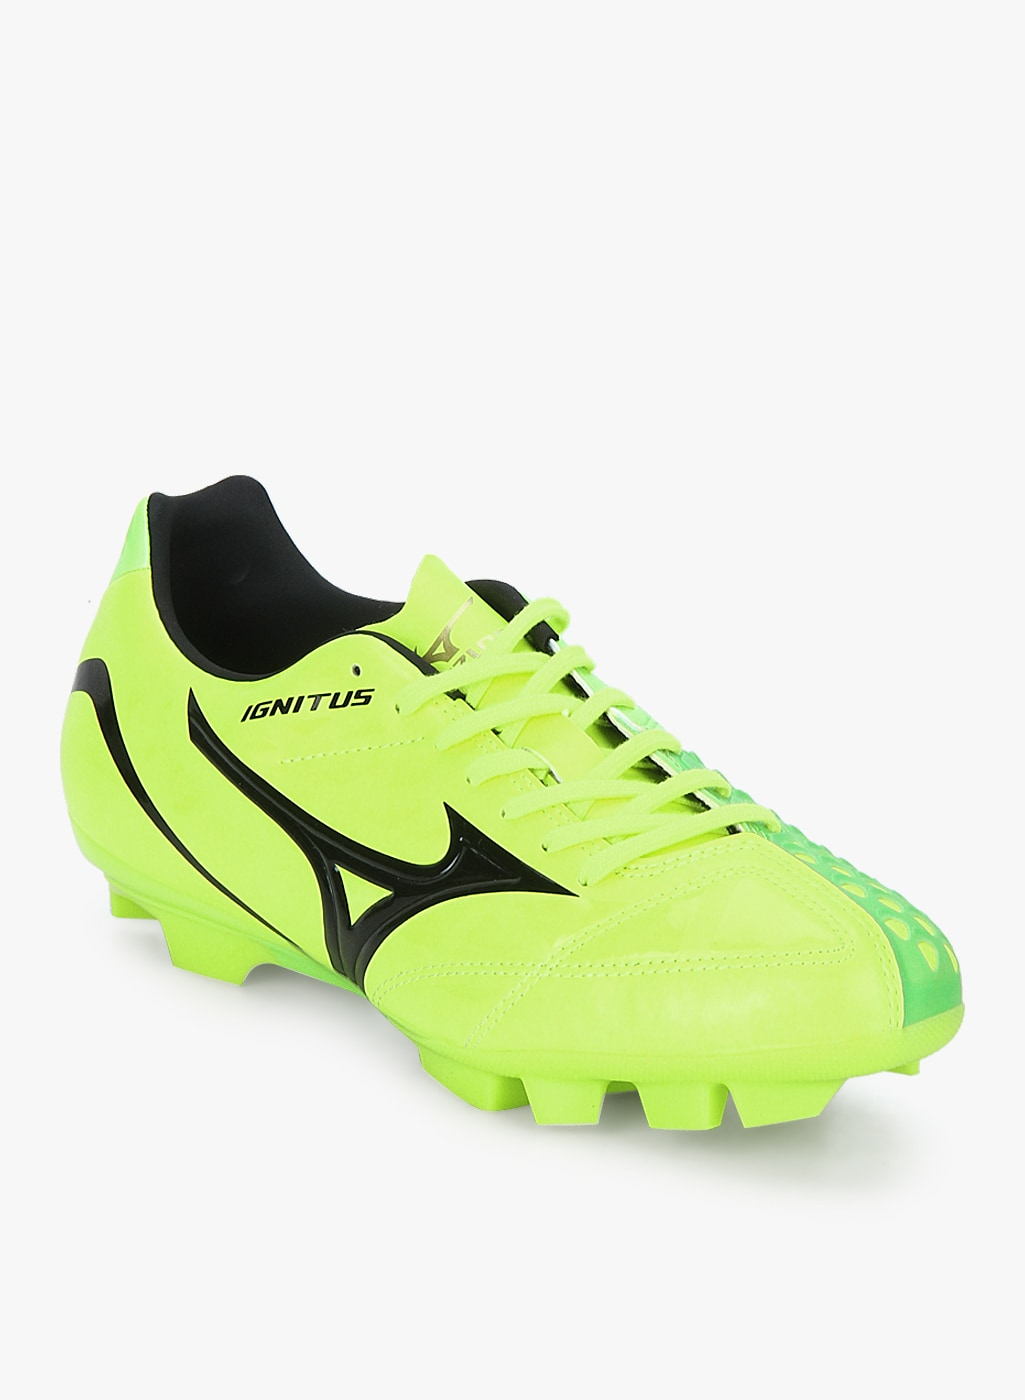 Football Shoes - Buy Football Studs Online for Men   Women in India a4af2188f5